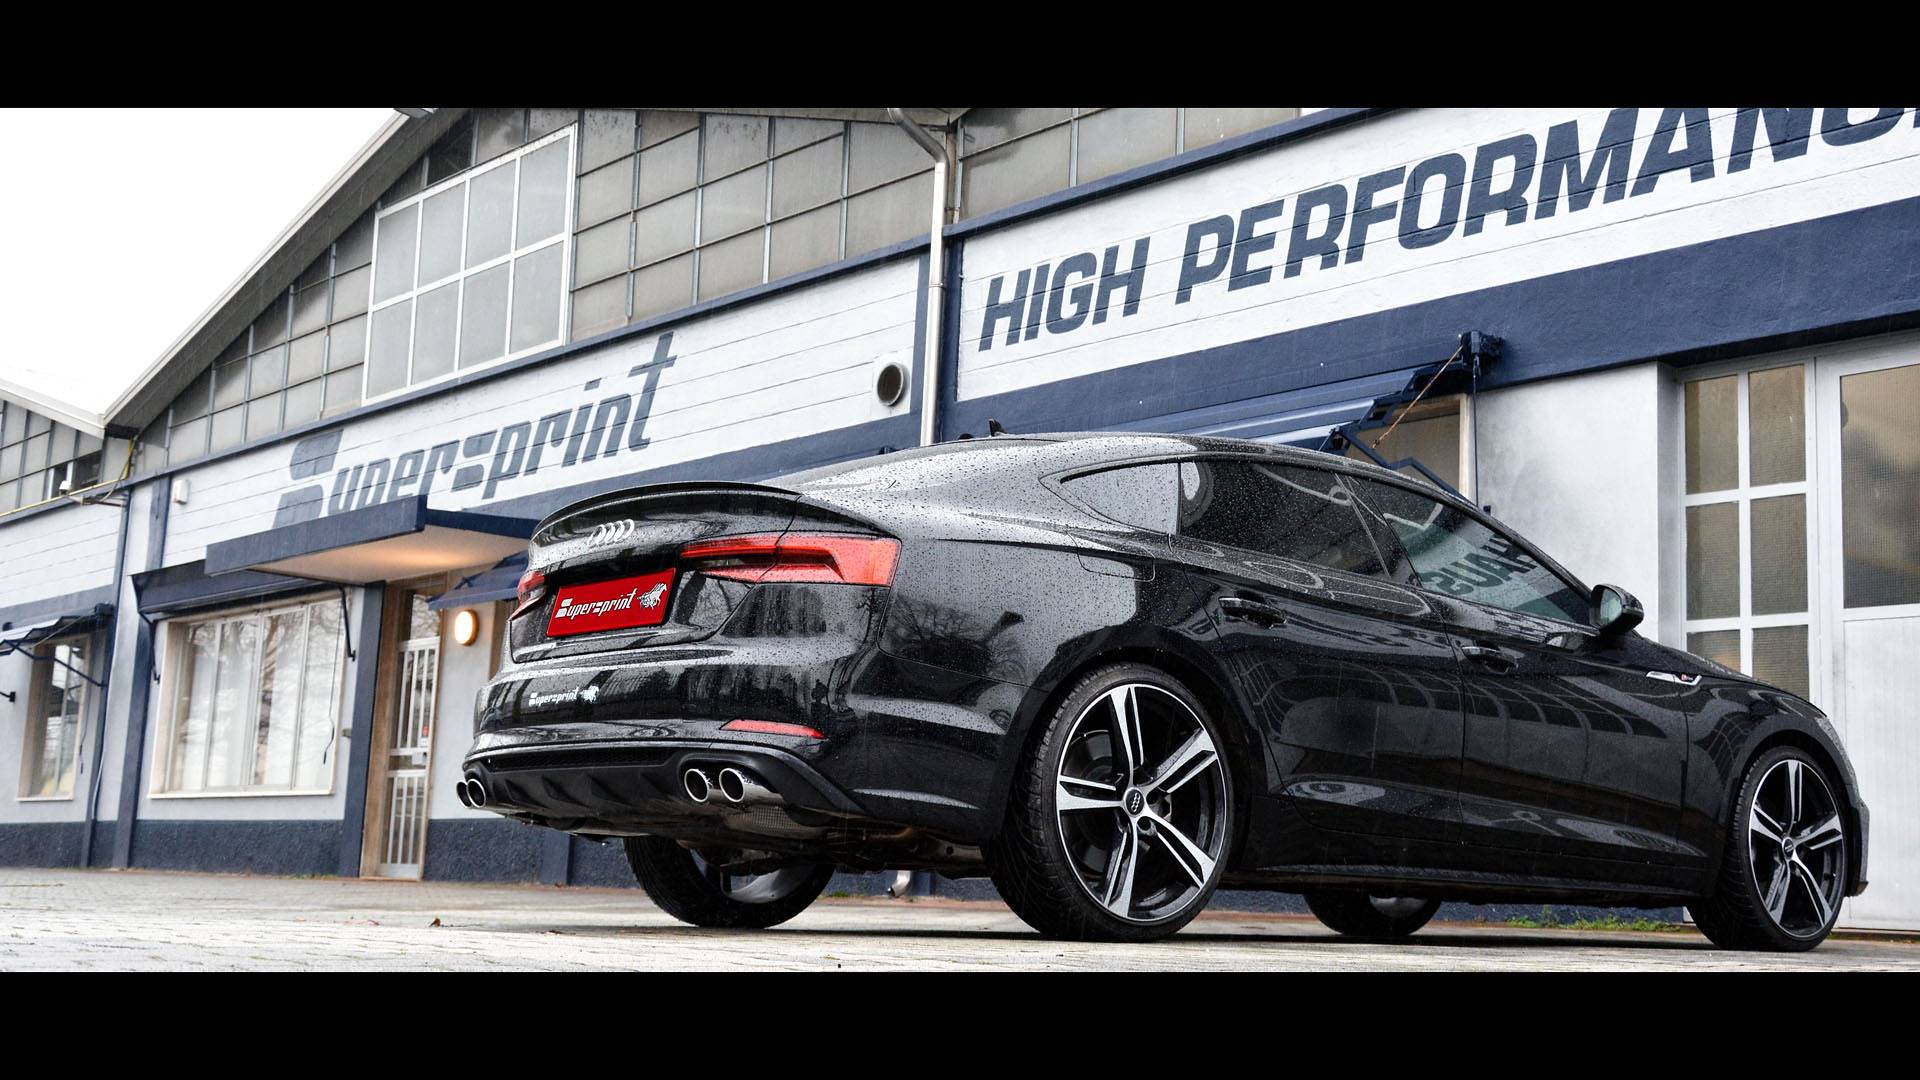 AUDI A5 B9 Sportback 2.0 TFSI - Supersprint full exhaust system